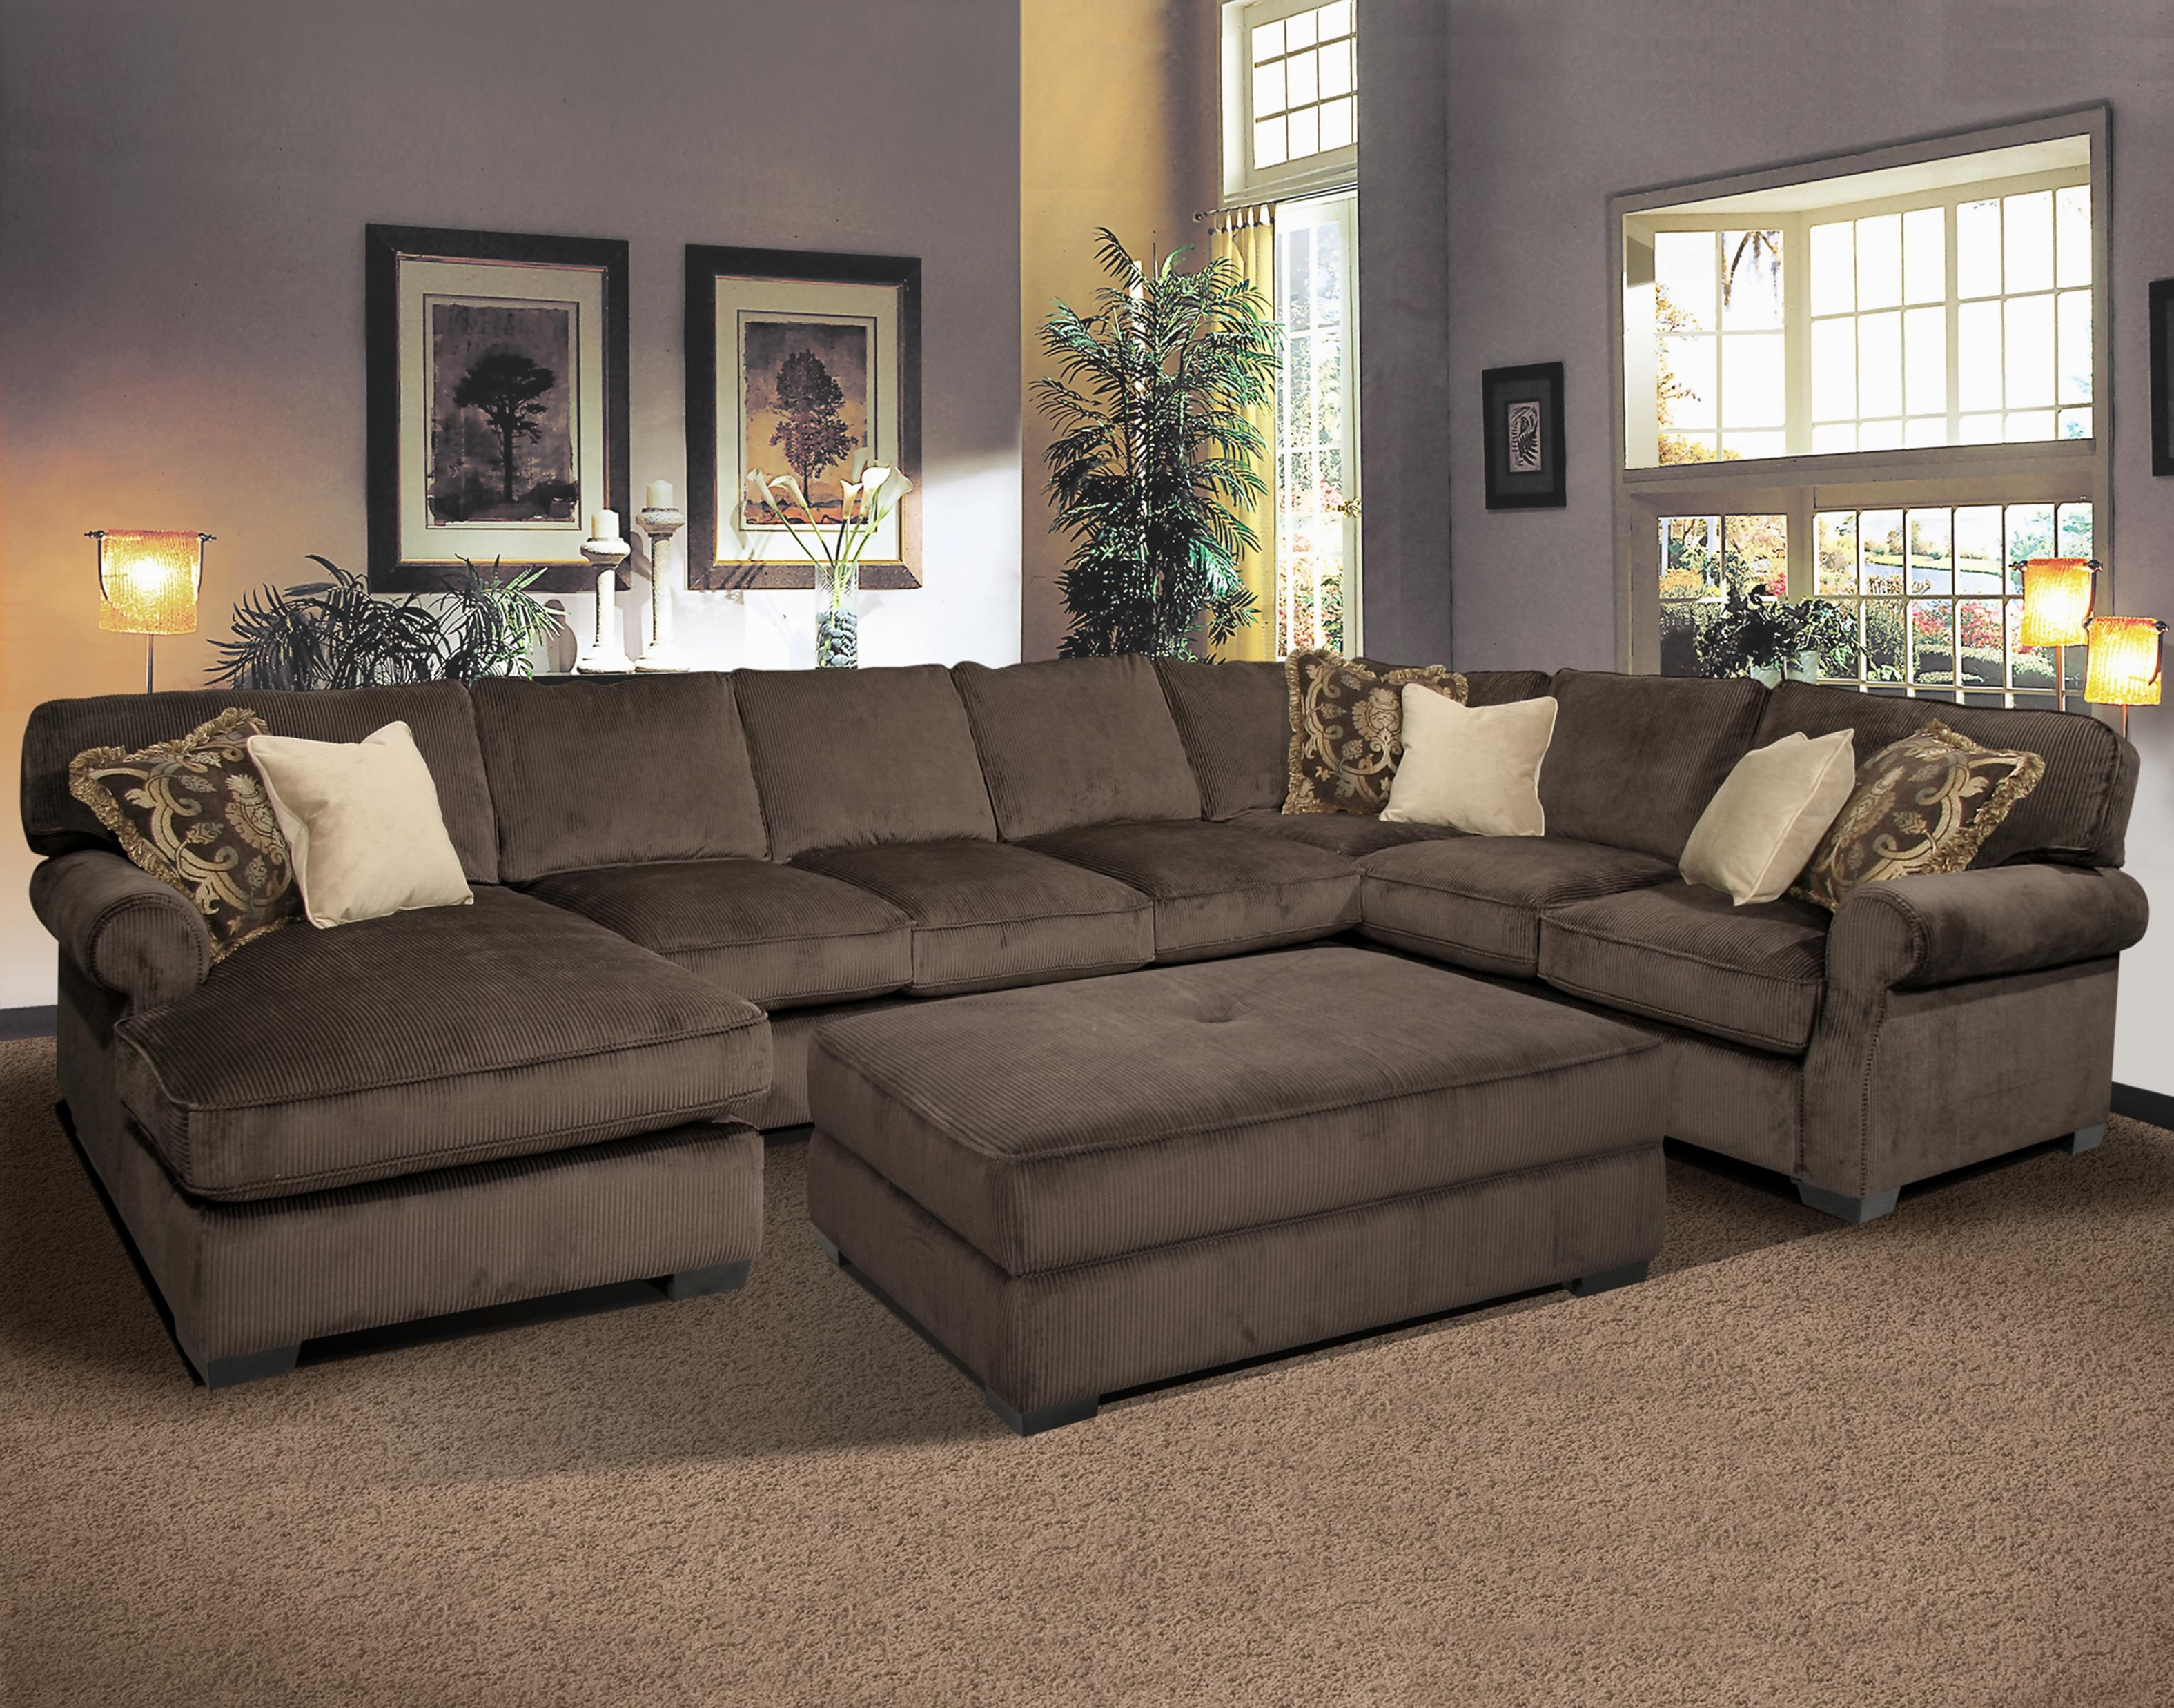 Epic Cheap U Shaped Sectional Sofas 35 About Remodel Backless In Backless Sectional Sofa (View 8 of 15)